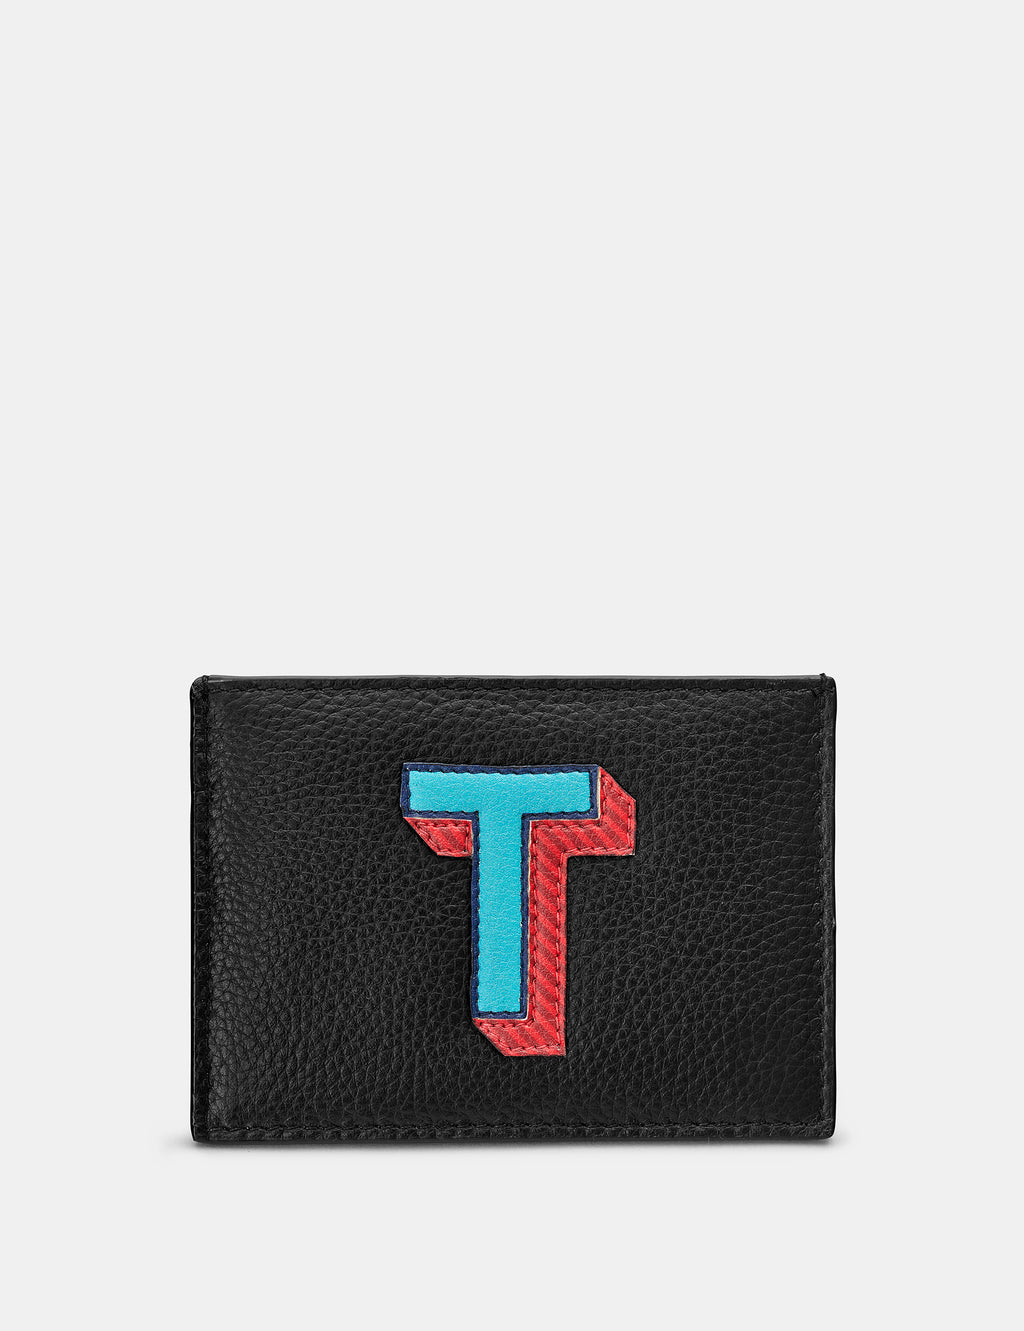 T Initial Black Leather Card Holder